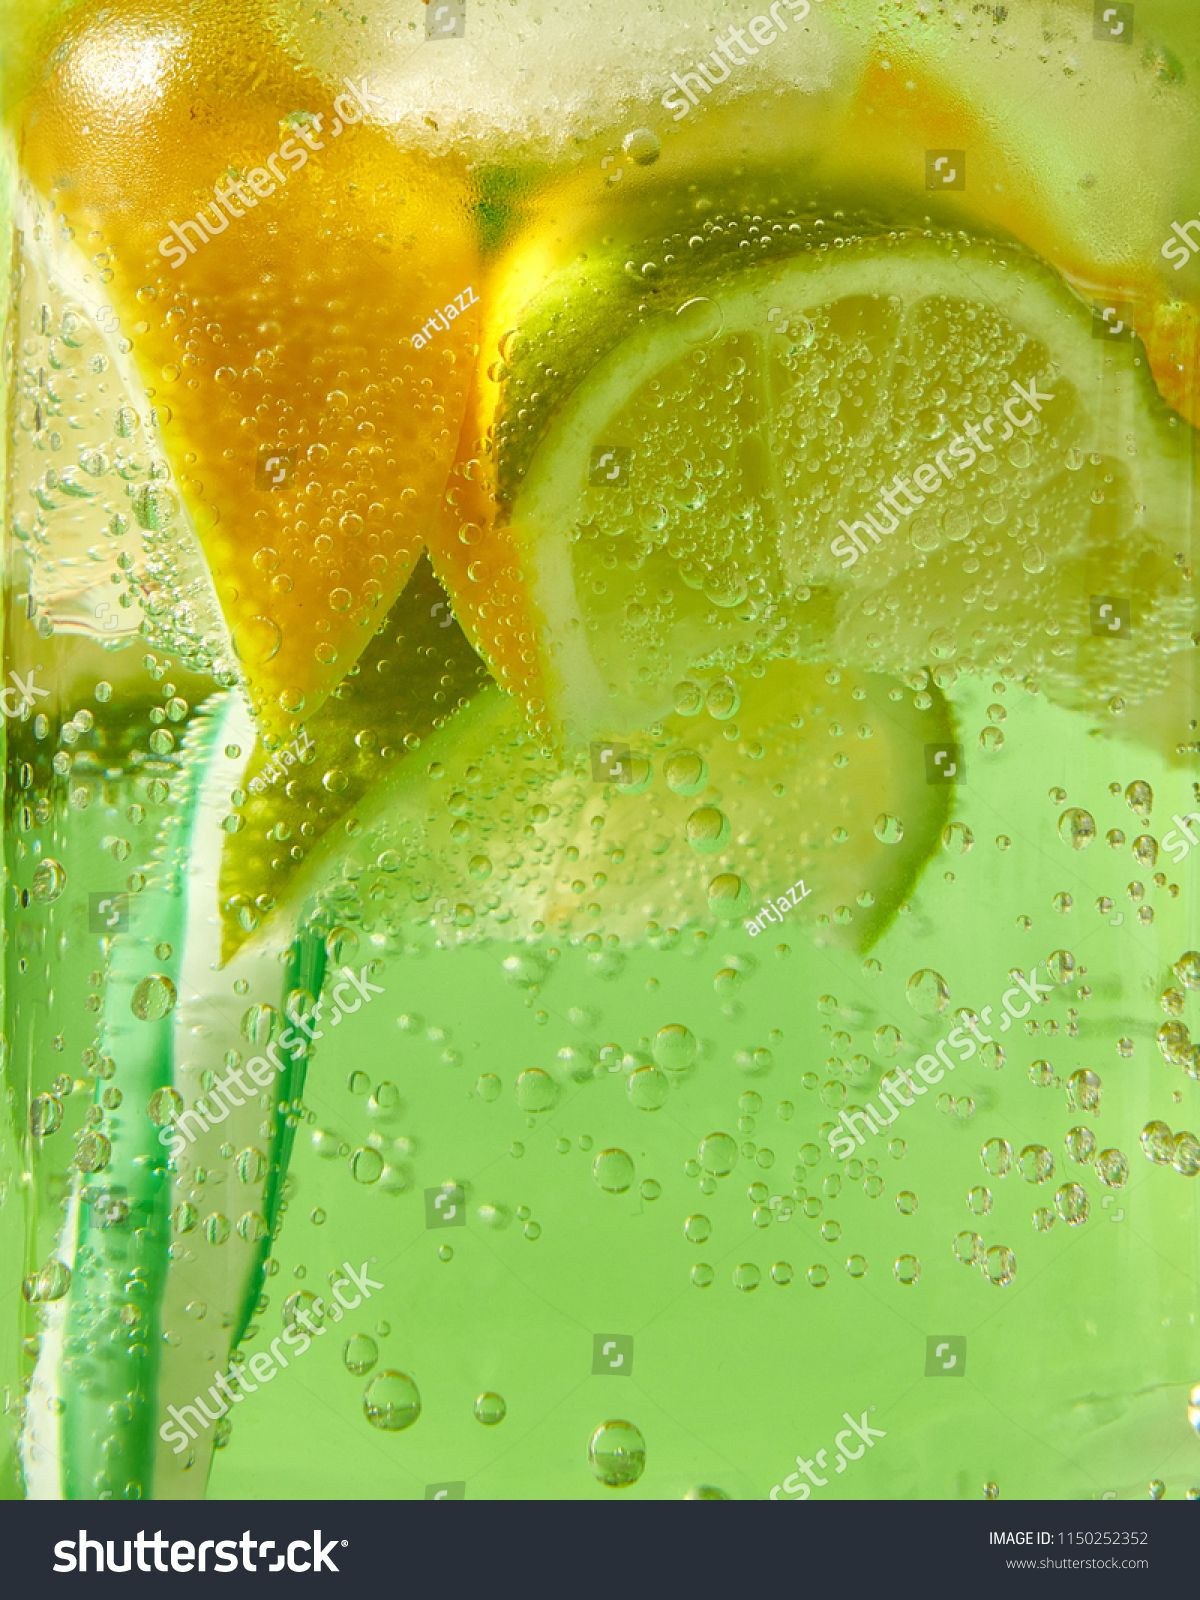 Pin By Mehrnoosh On Lemon Fruit Background Summer Drinks Alcohol Lime Hd wallpaper lime slice bubbles macro